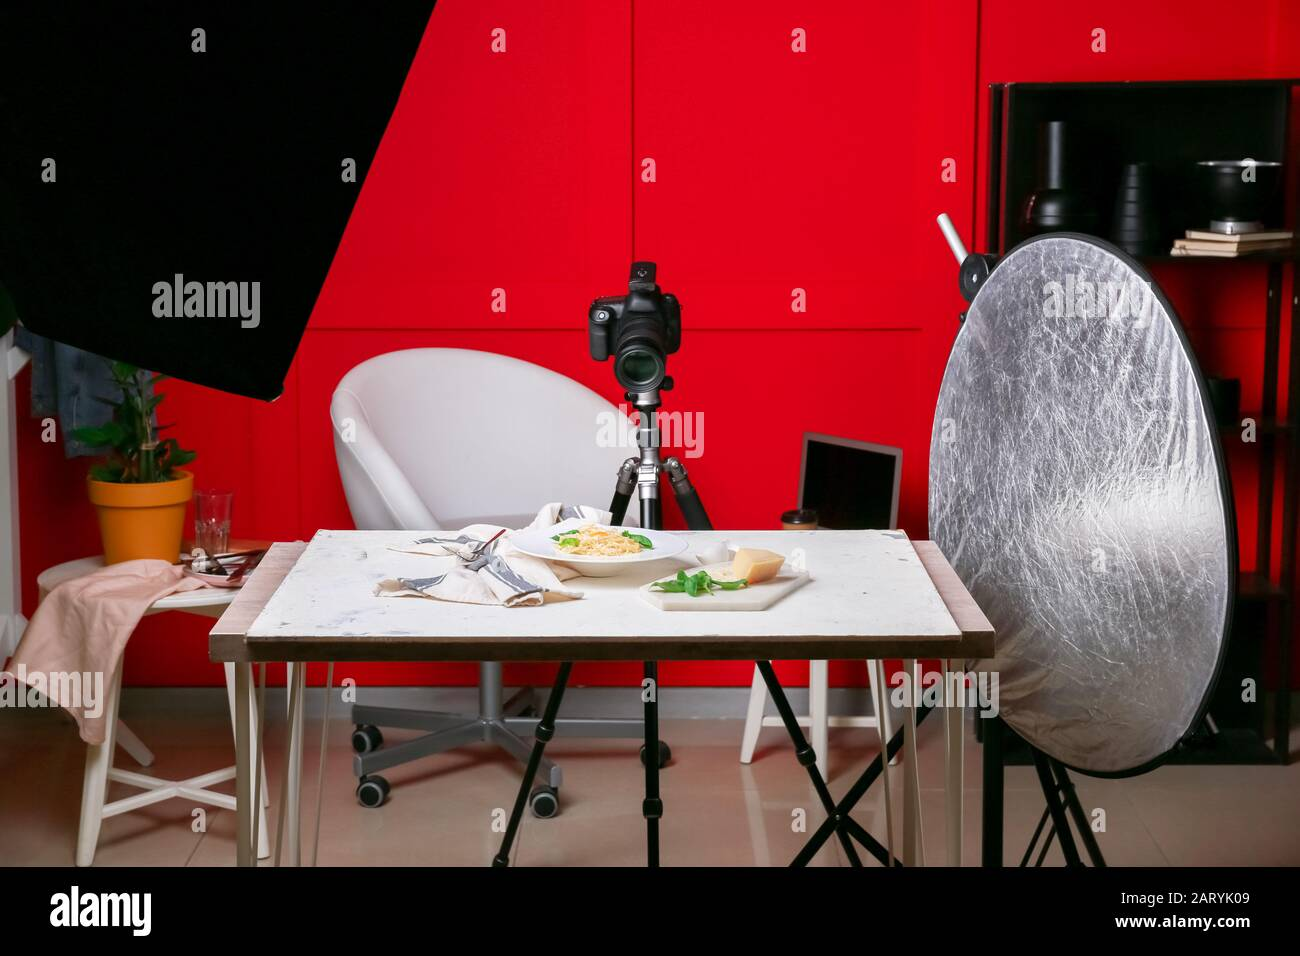 Interior Of Modern Photo Studio With Professional Equipment And Food On Table Stock Photo Alamy